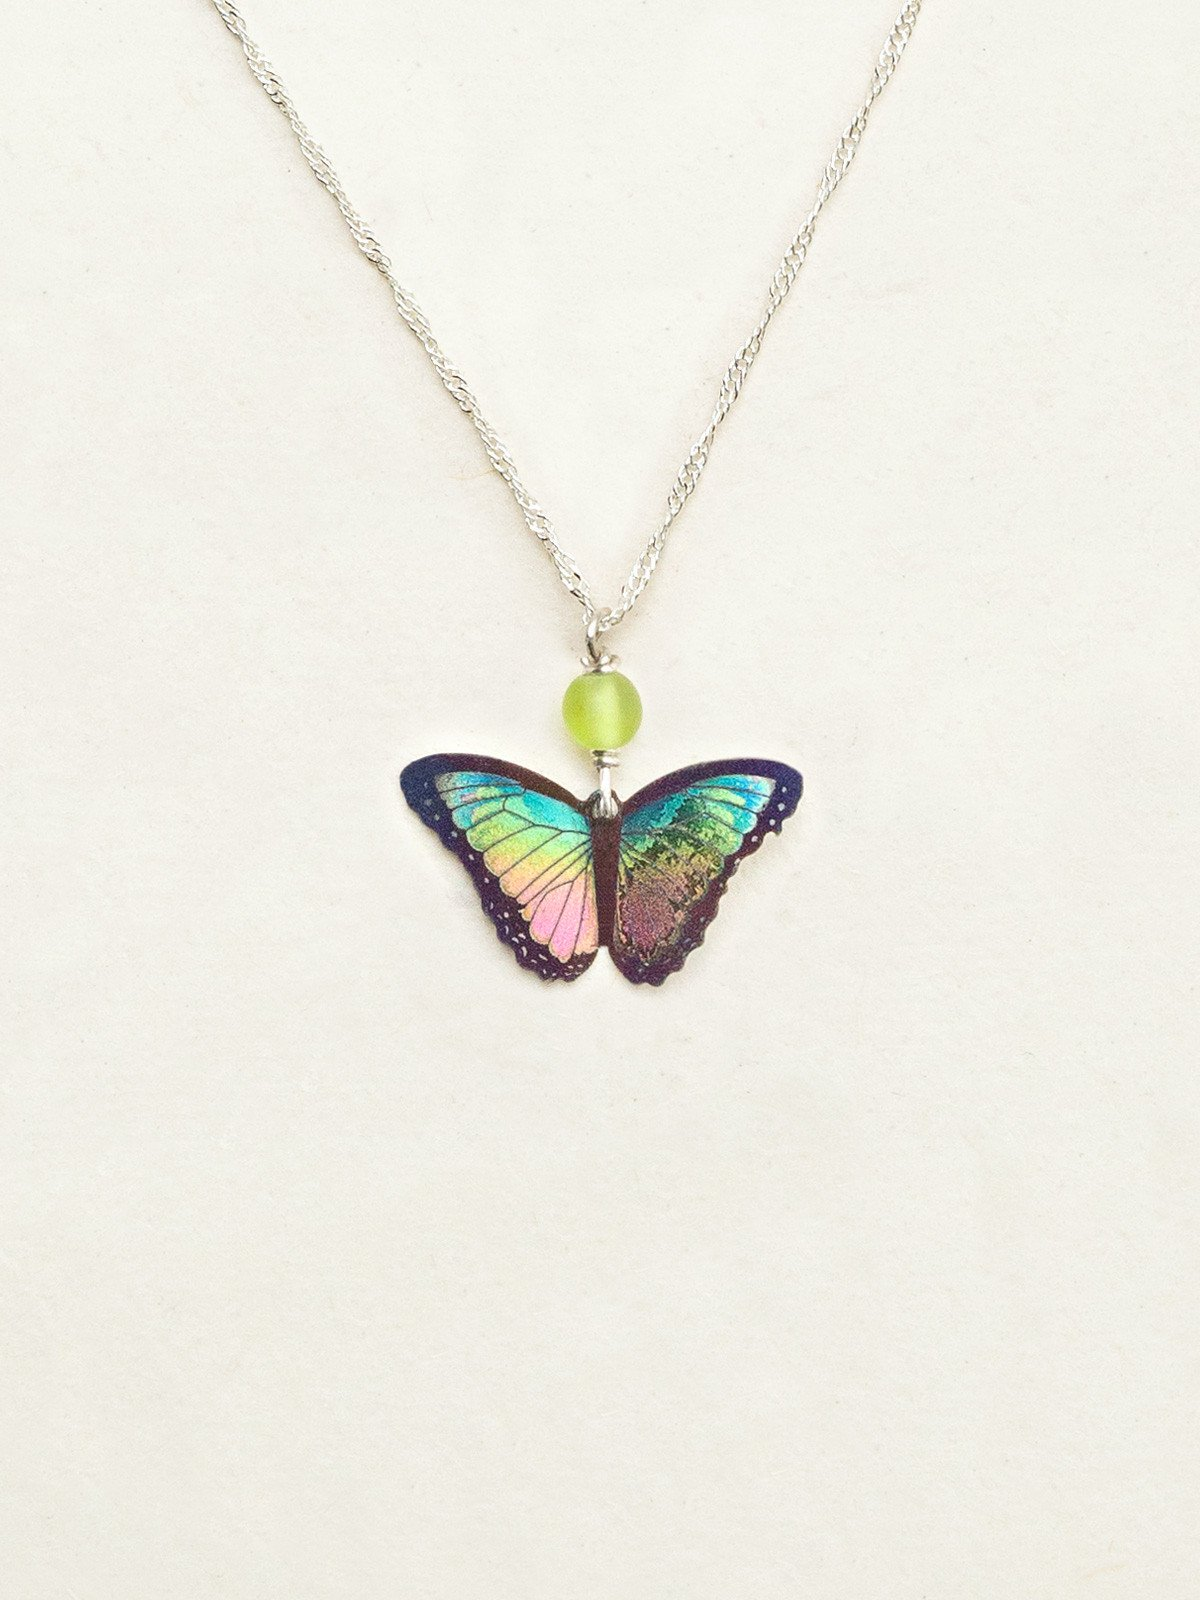 Bella Butterfly Necklace in Island Green by jewelry designer Holly Yashi